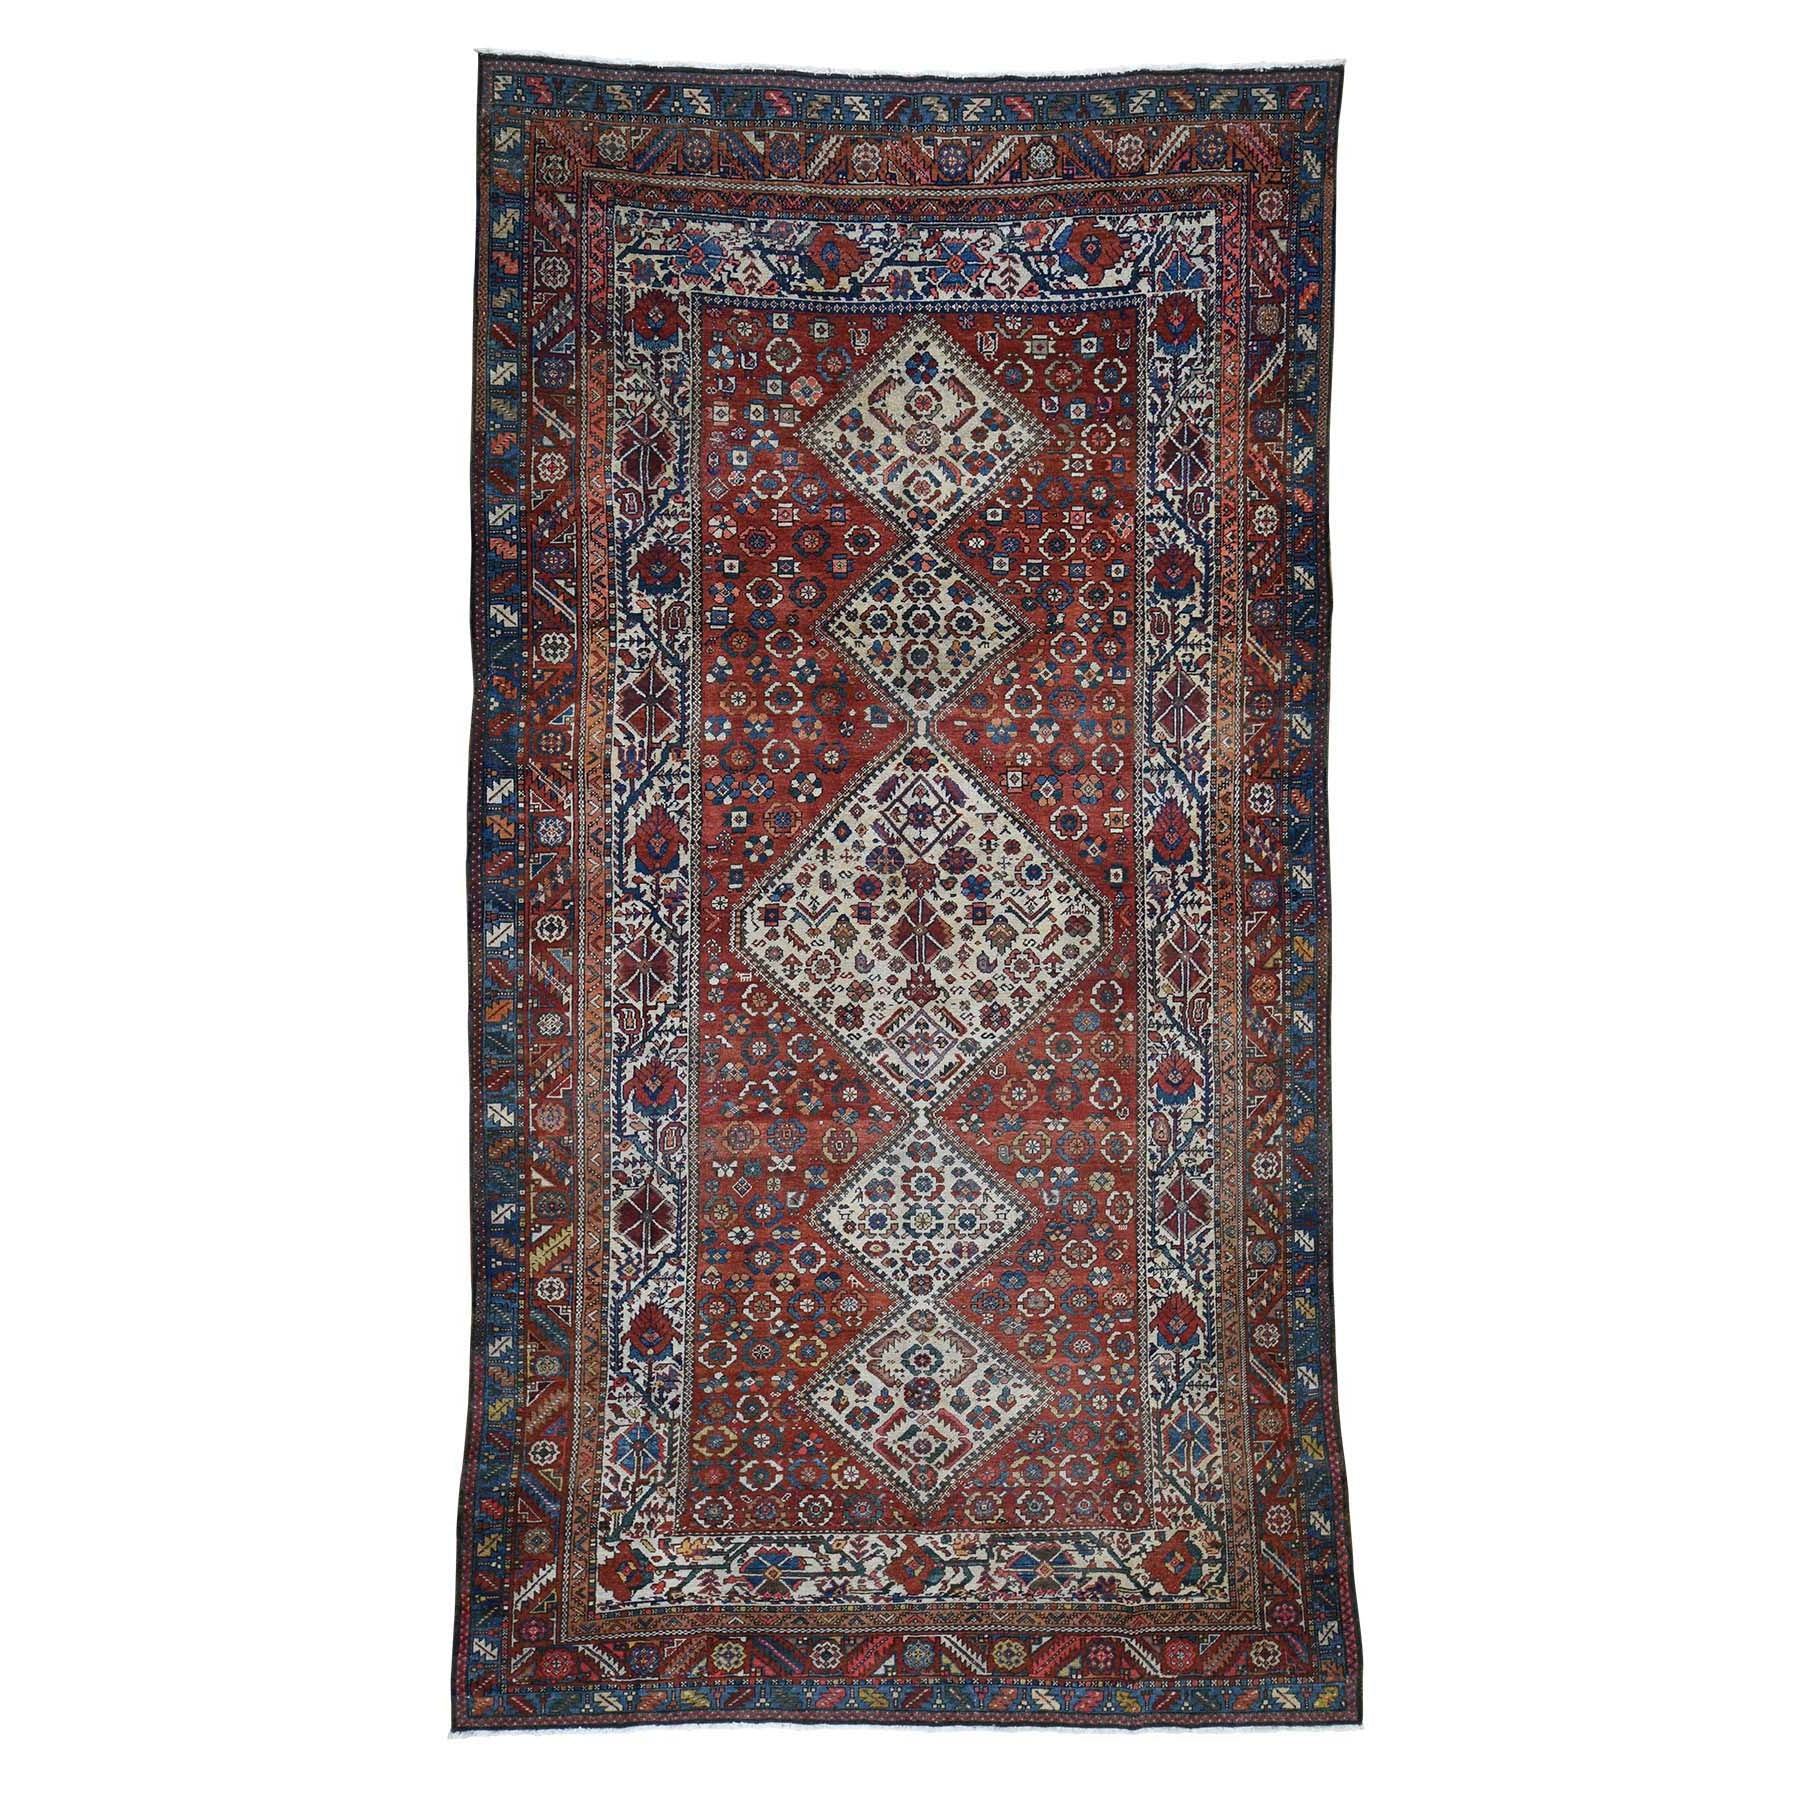 "Handmade Antique Rectangle Rug > Design# SH45913 > Size: 6'-8"" x 12'-8"" [ONLINE ONLY]"